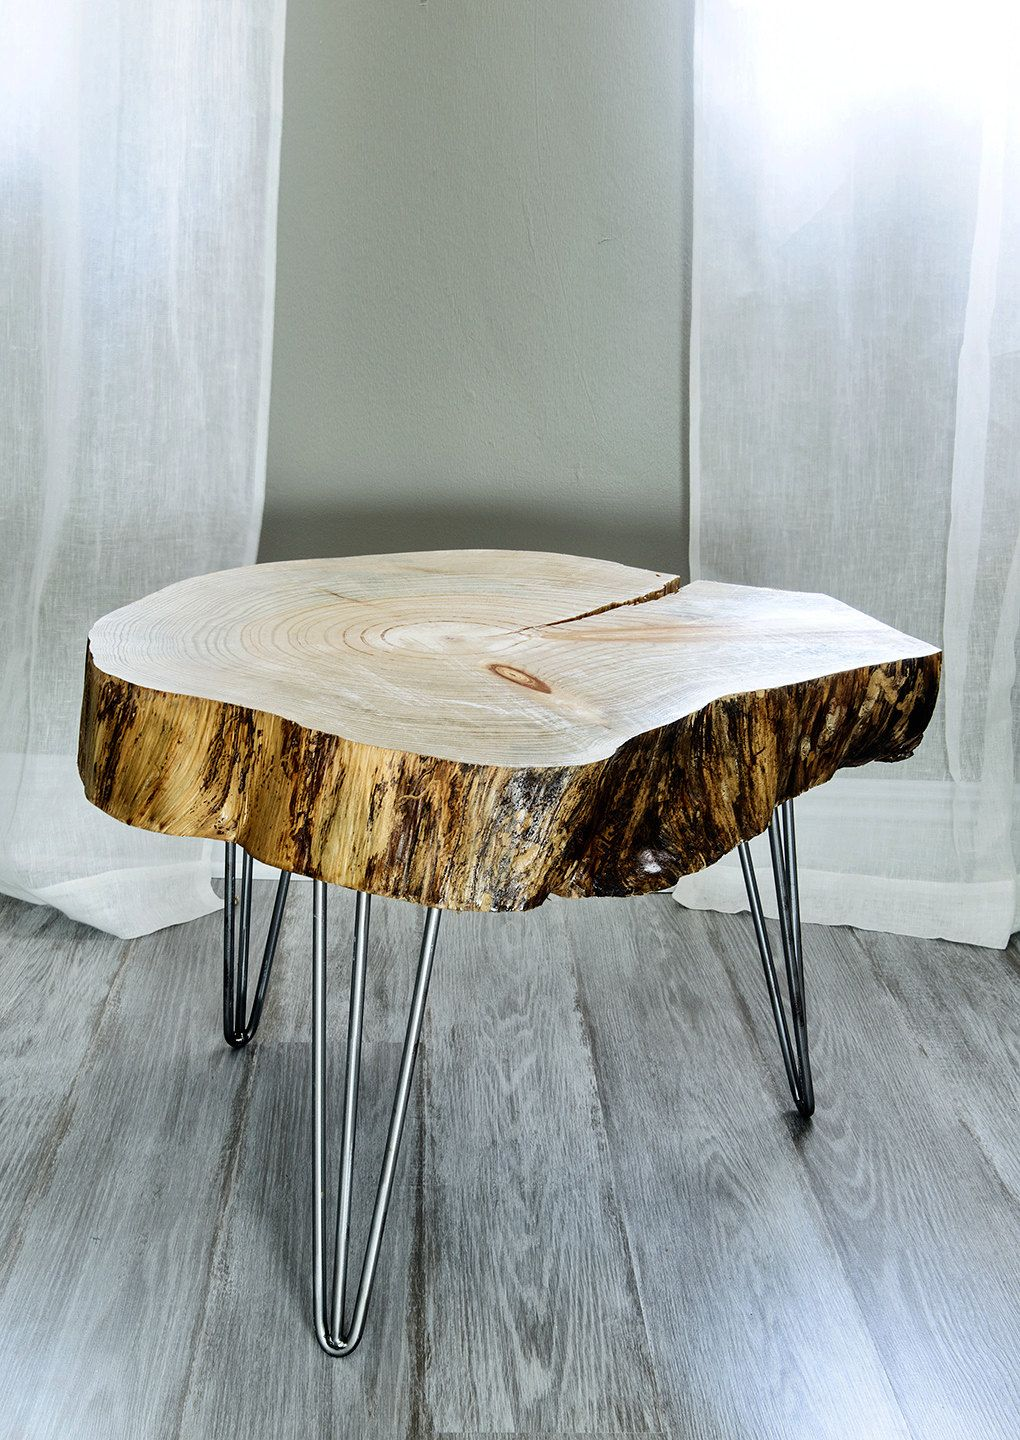 Design Tree Slice Table reclaimed canary island pine tree slice table end side coffee table